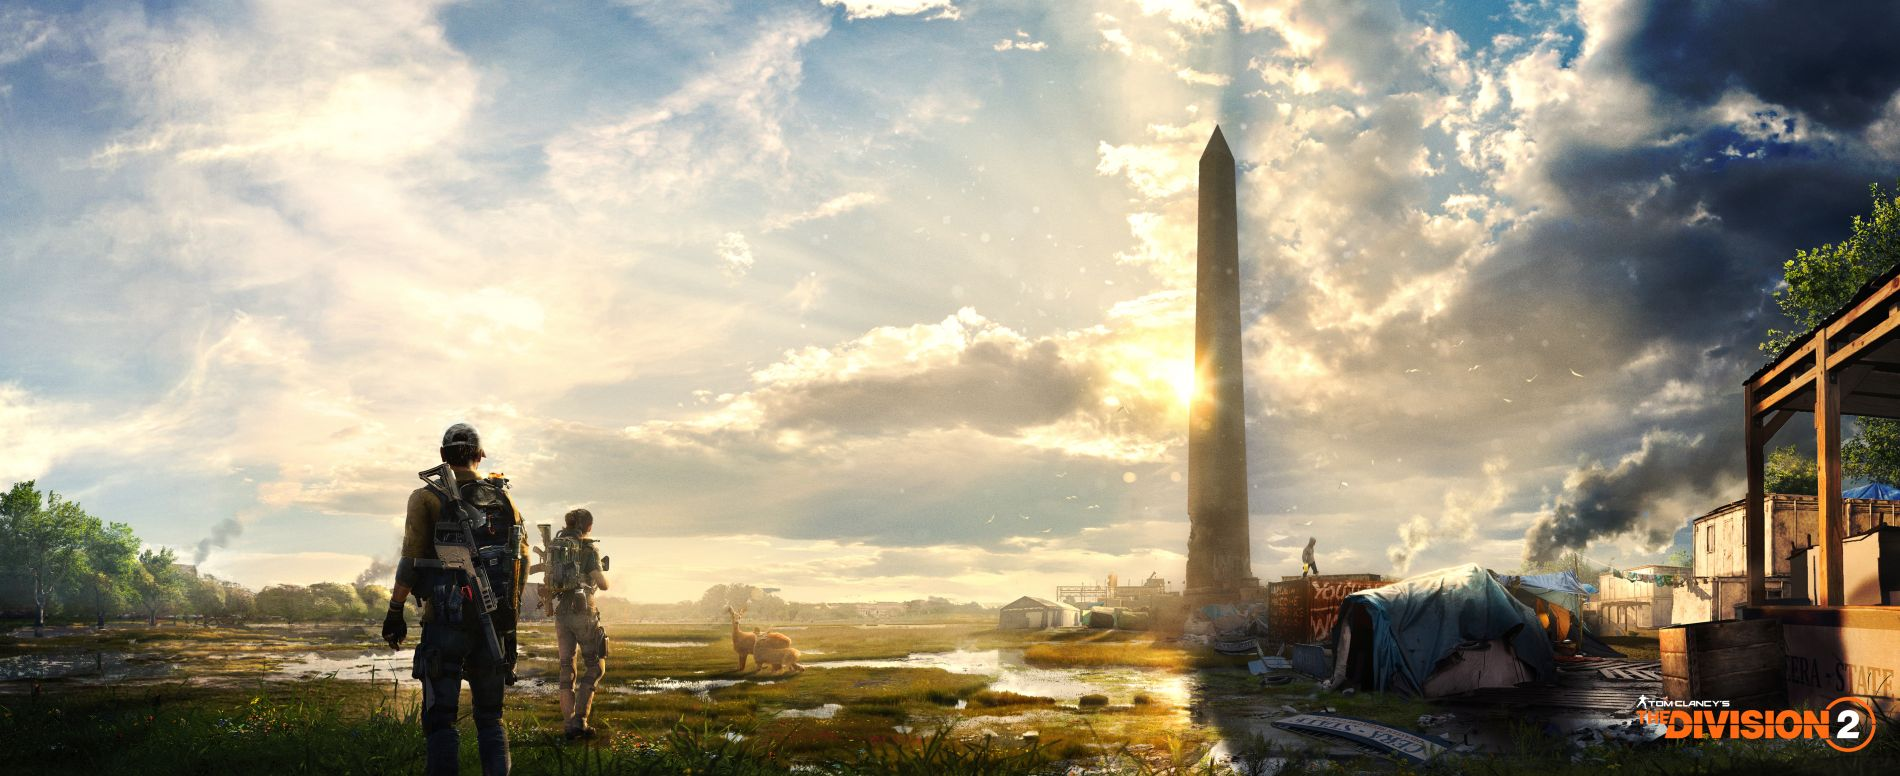 The Division 2 Tom Clancy Consoles Supported